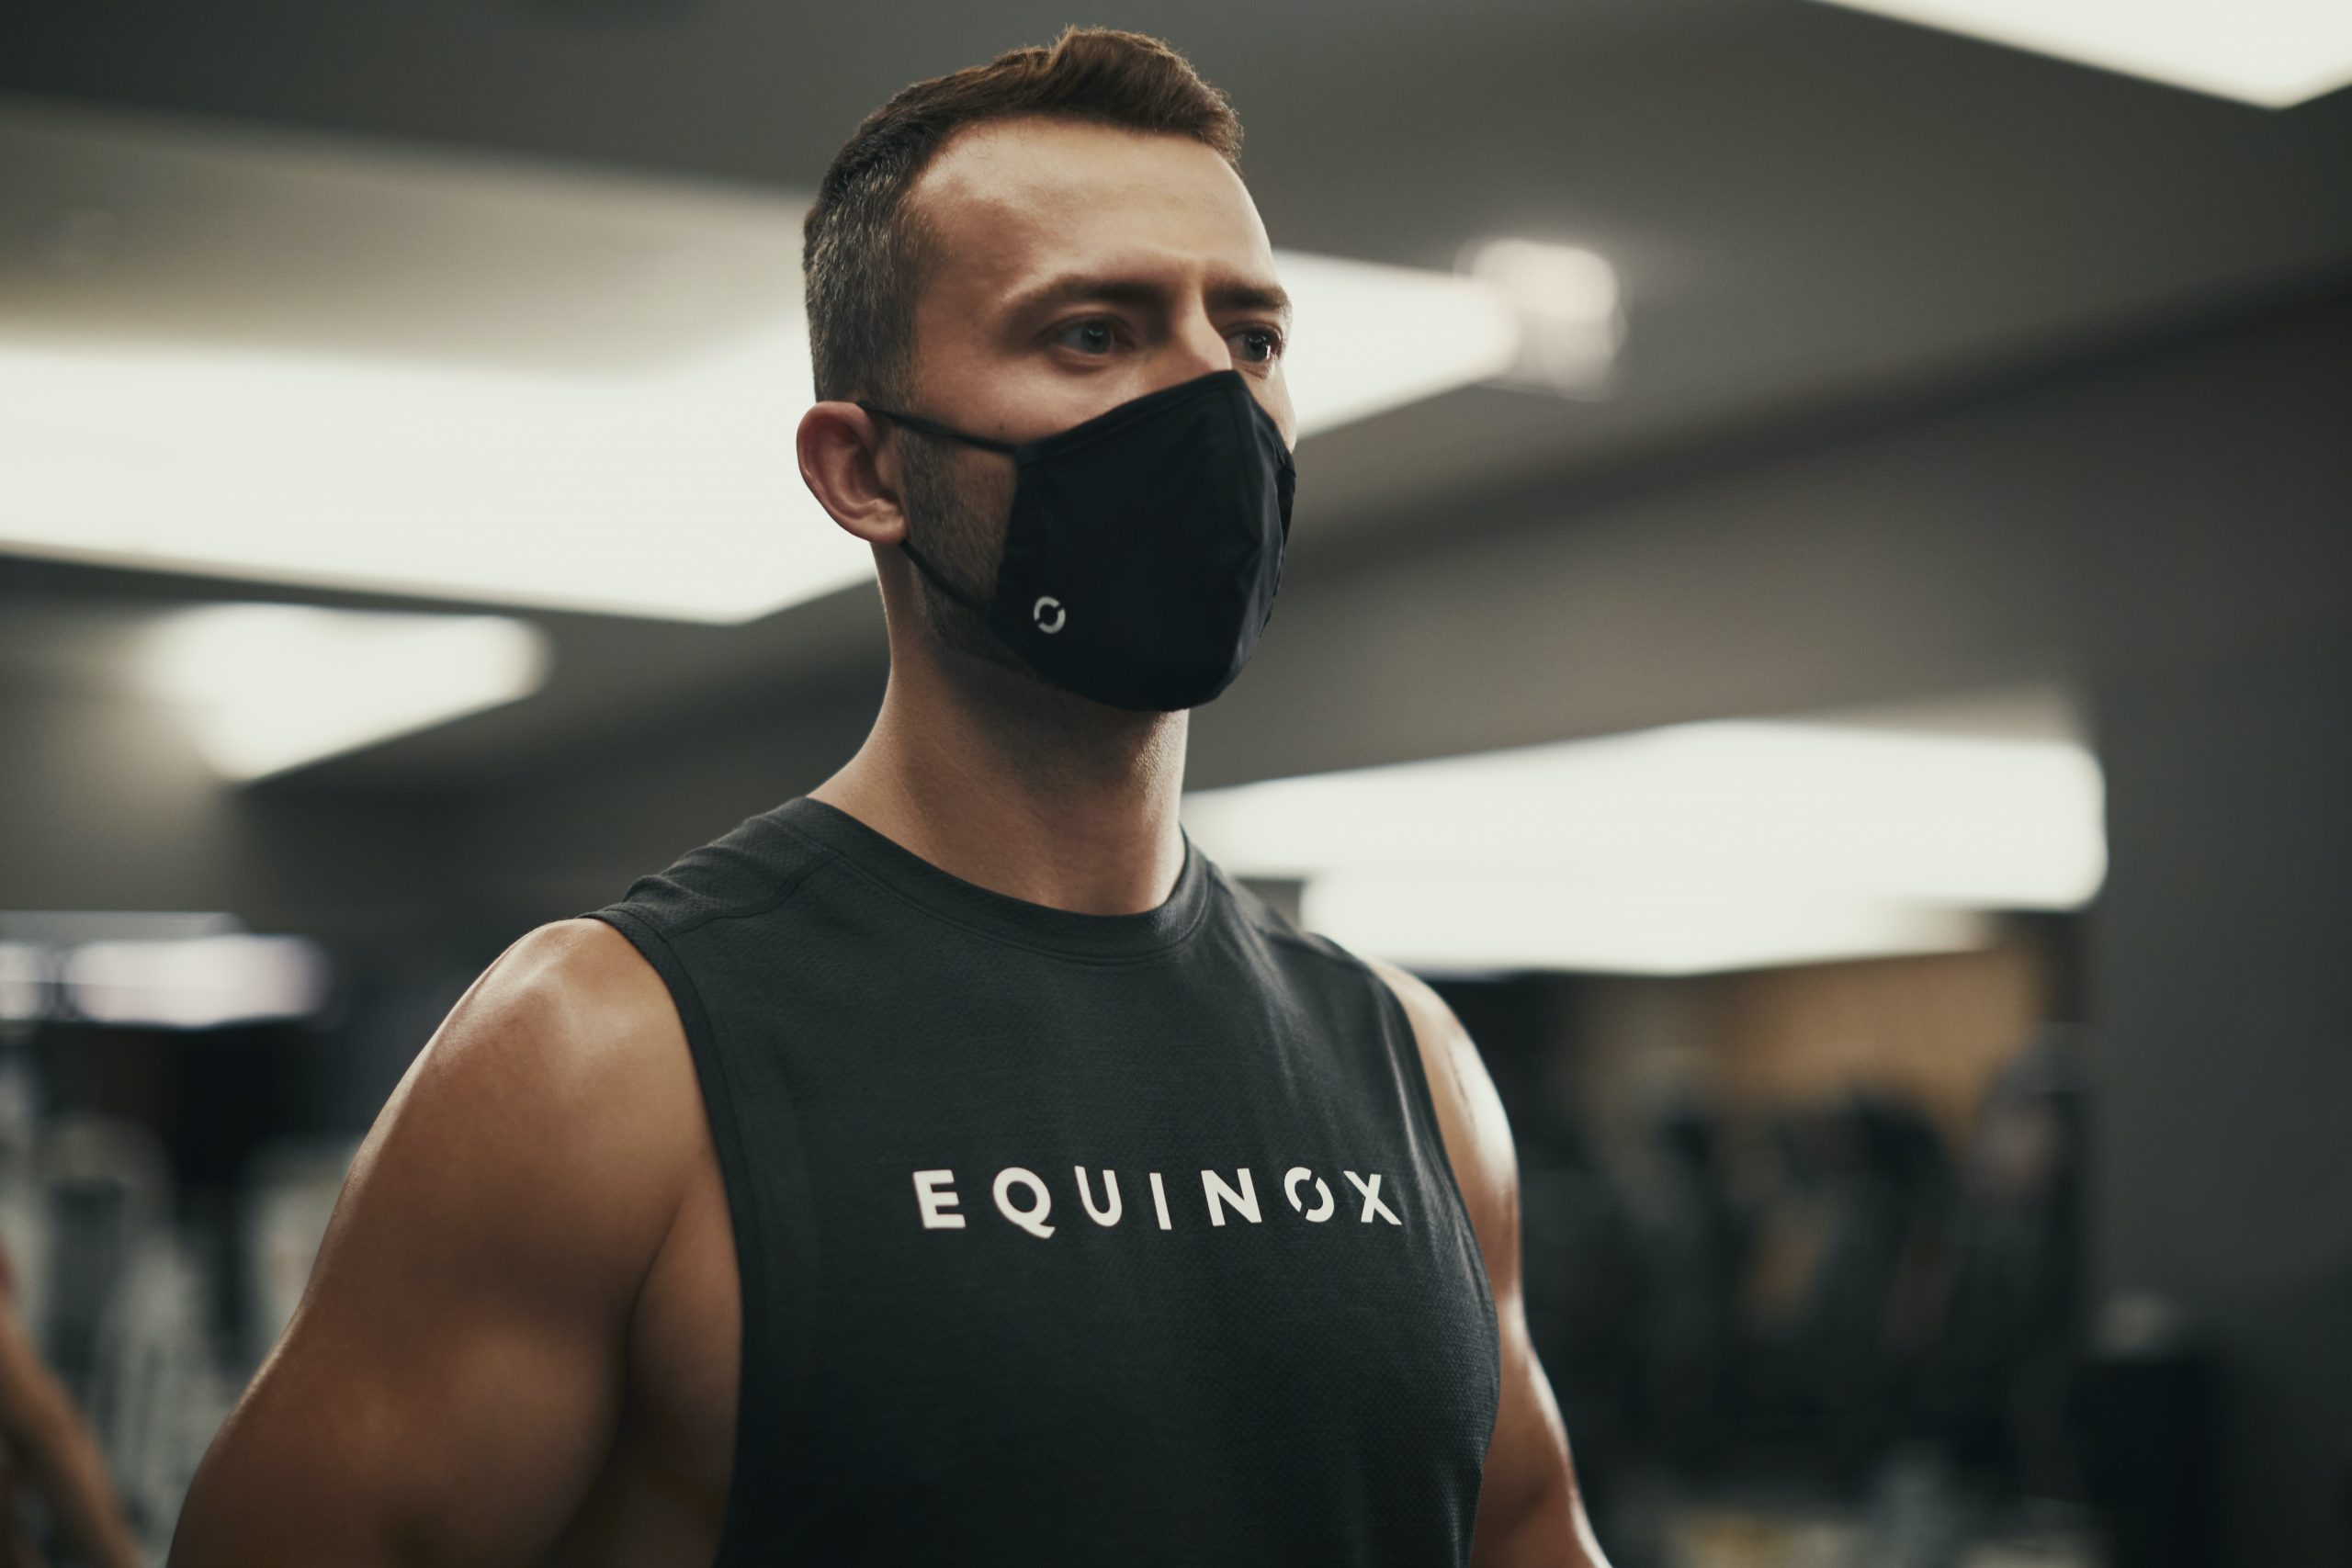 <equinox personal trainer in mask